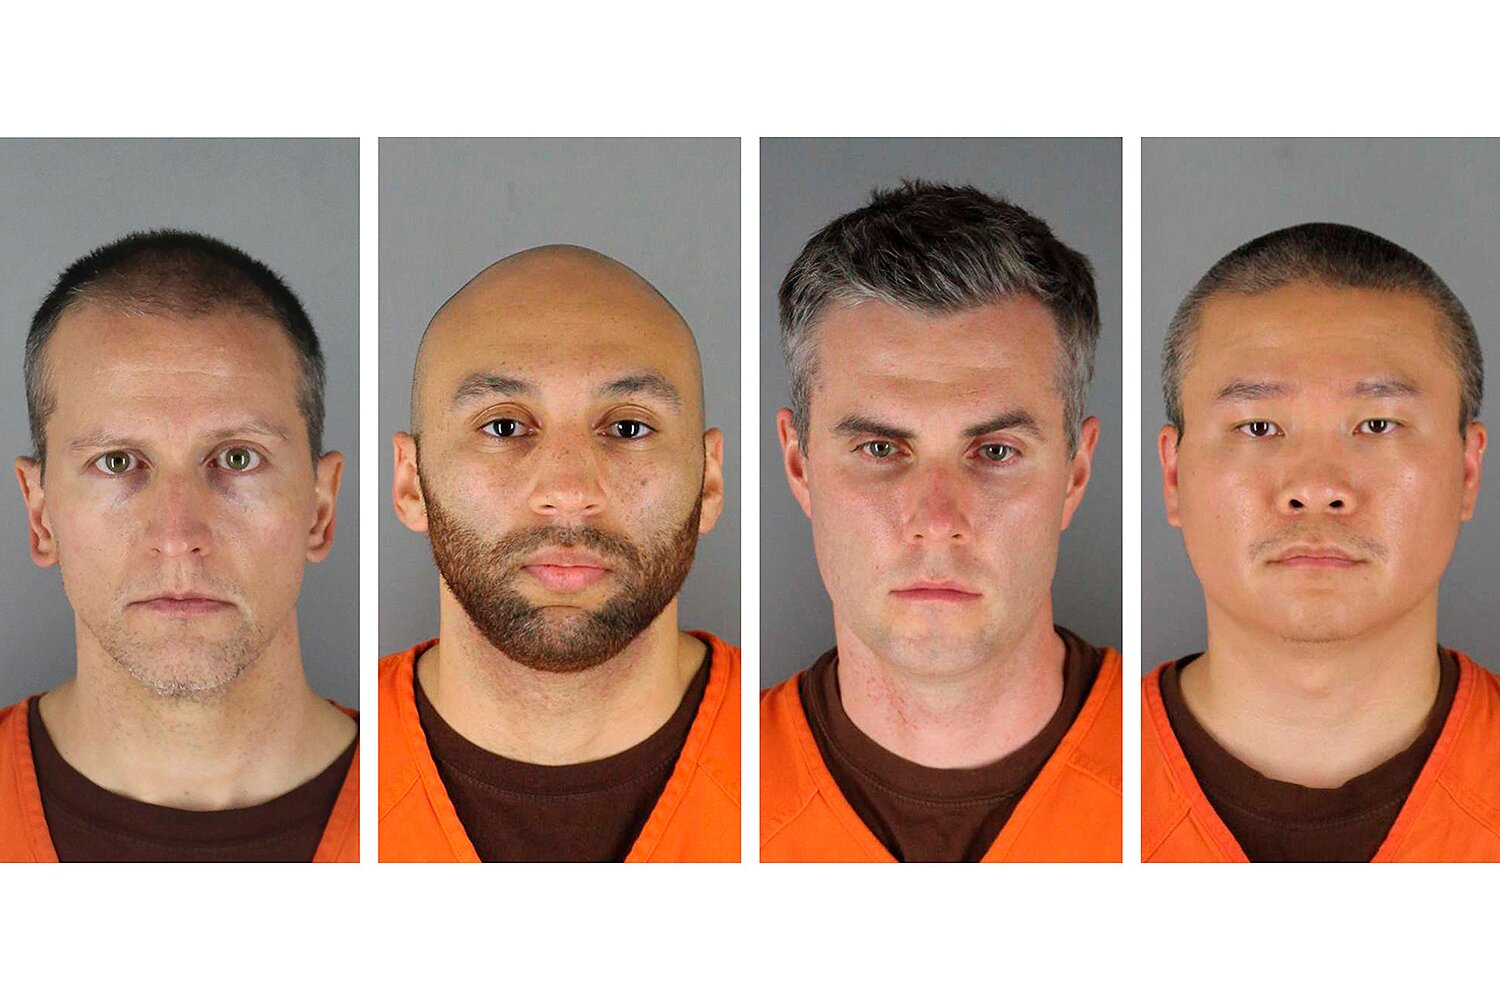 The Serious Side - part 7 - Page 10 Image?url=https%3A%2F%2Fstatic.onecms.io%2Fwp-content%2Fuploads%2Fsites%2F20%2F2020%2F06%2F04%2Fminneapolis-police-mugs